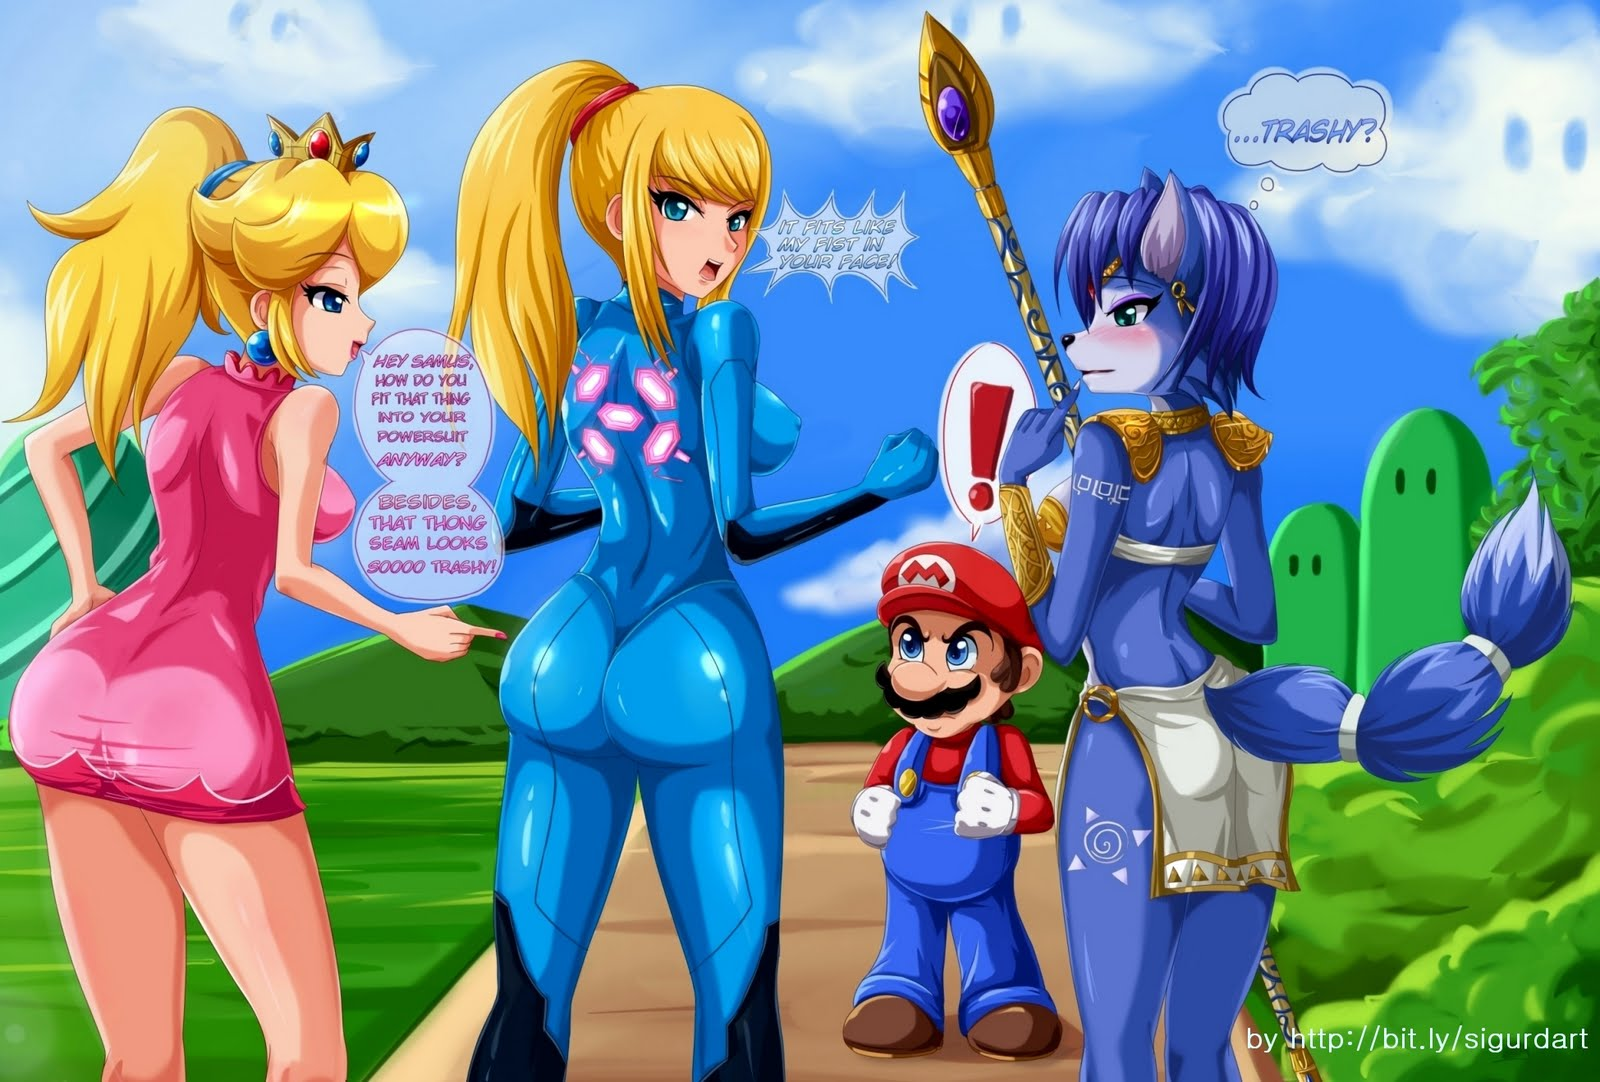 ... involving Princess Peach, Zero Suit Samus, Krystal and Mario.